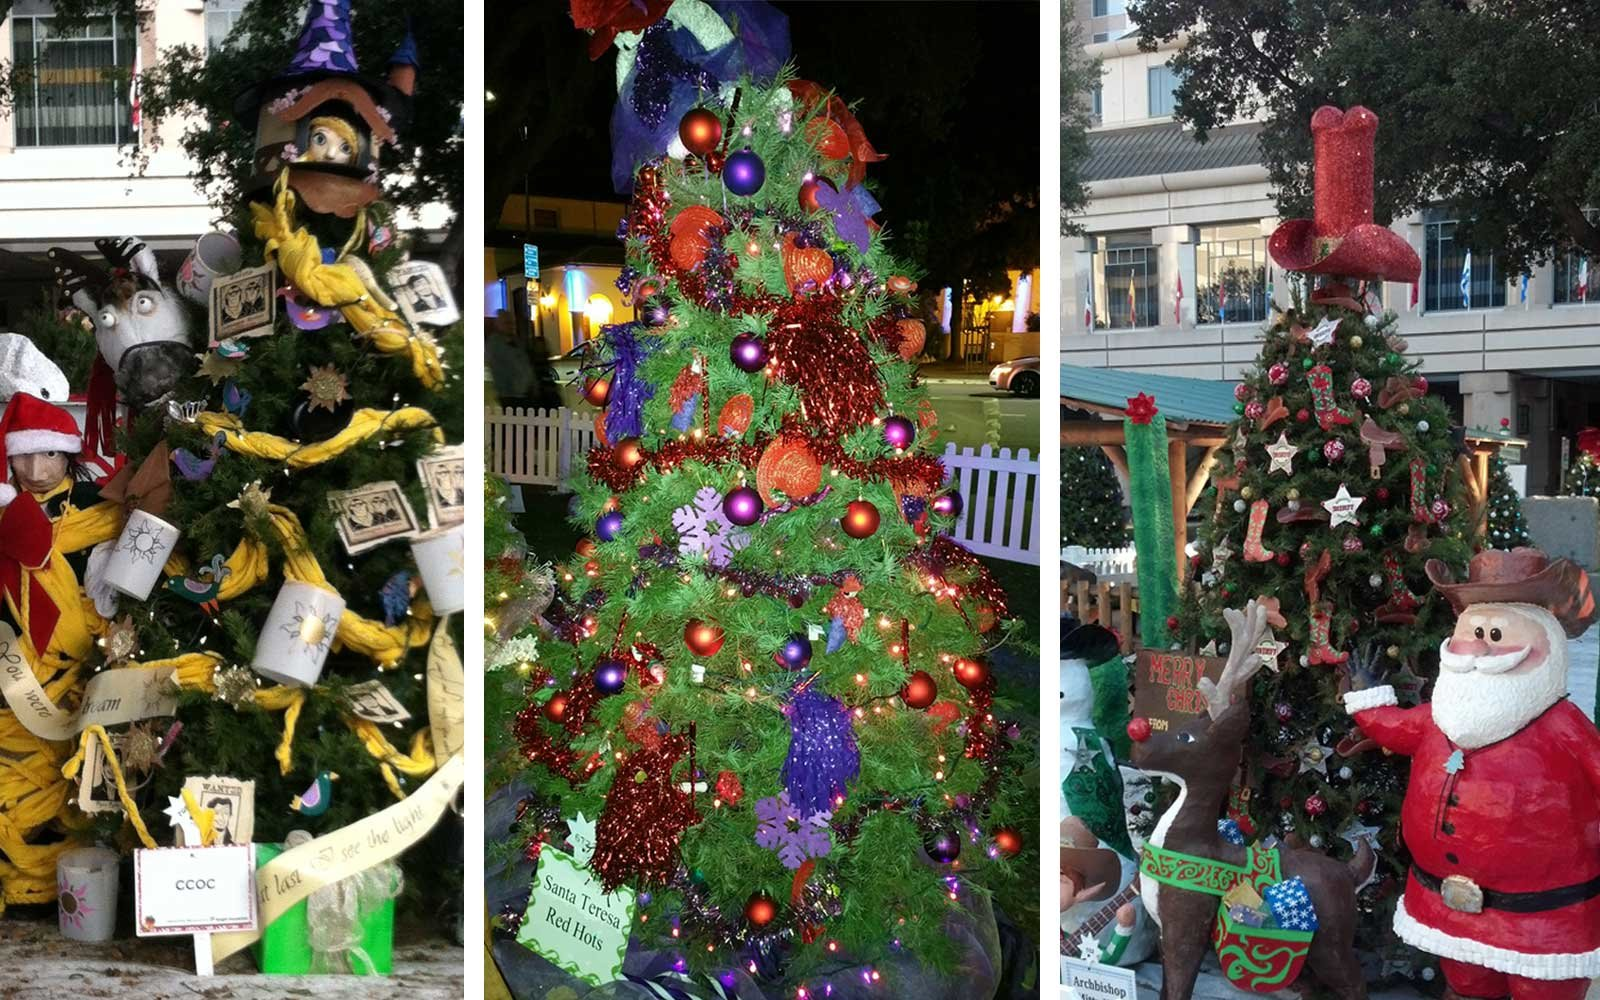 San Jose California Christmas in the park